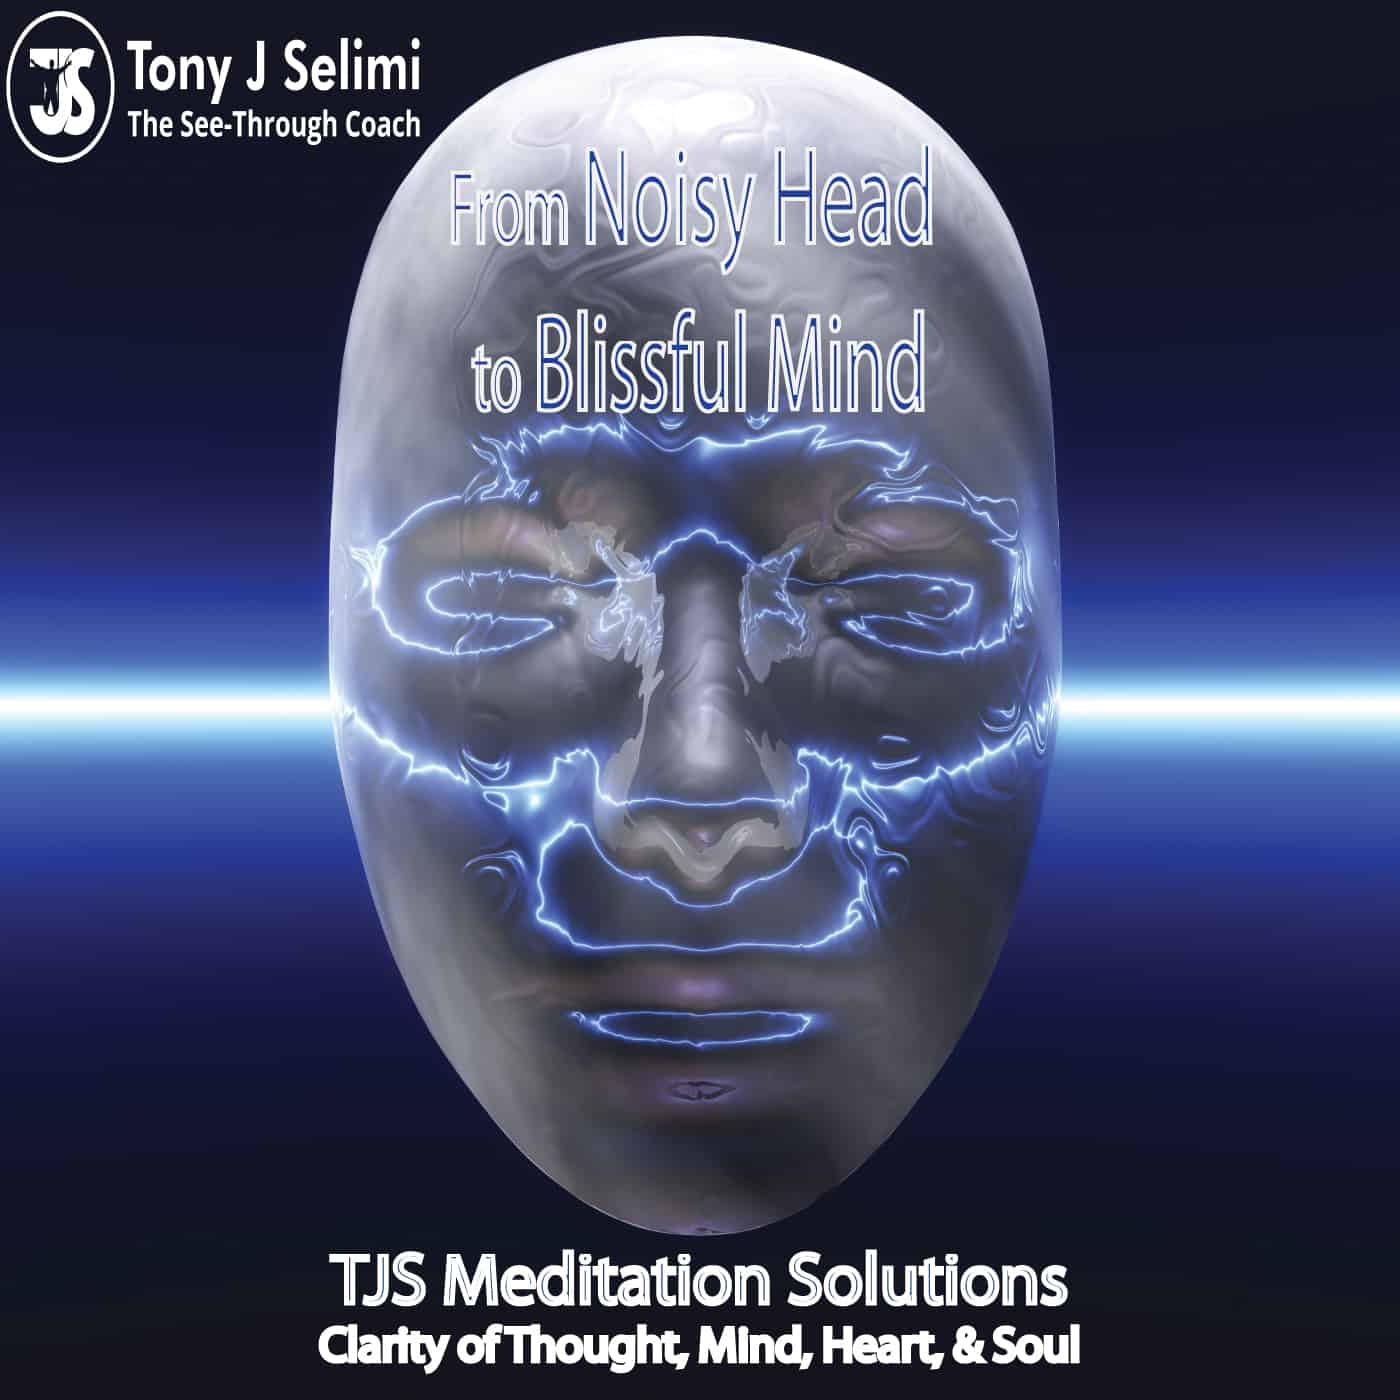 A Path To Wisdom Written By Tony J Selimi Designing Your Life Book From Noisy Head To Blissful Mind Meditation